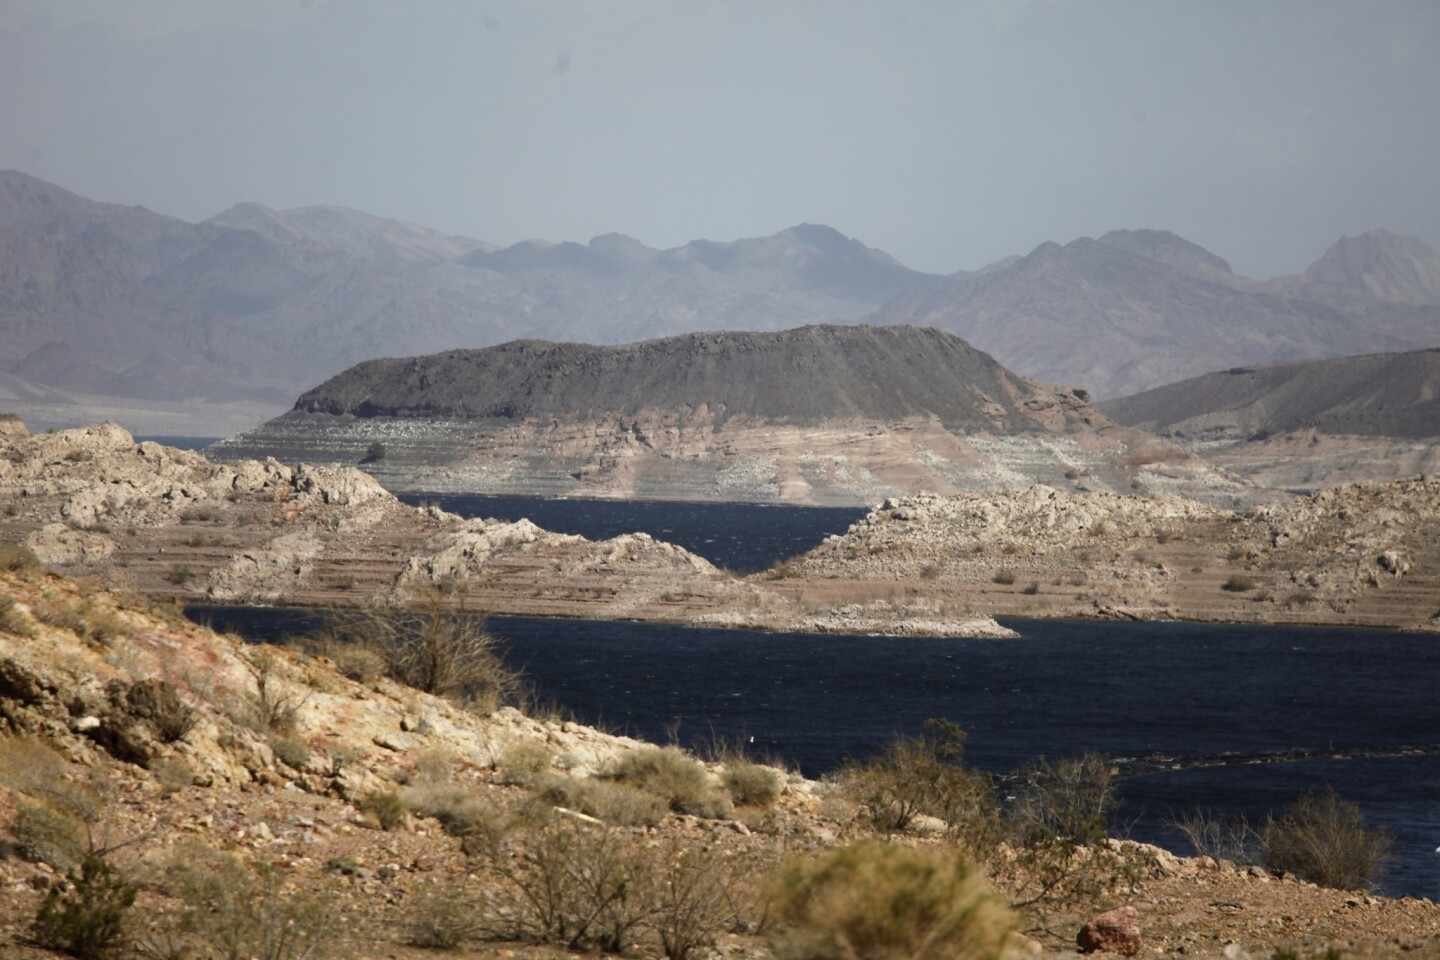 An ongoing drought and the Colorado River's stunted flow have shrunk Lake Mead to its lowest level in generations.